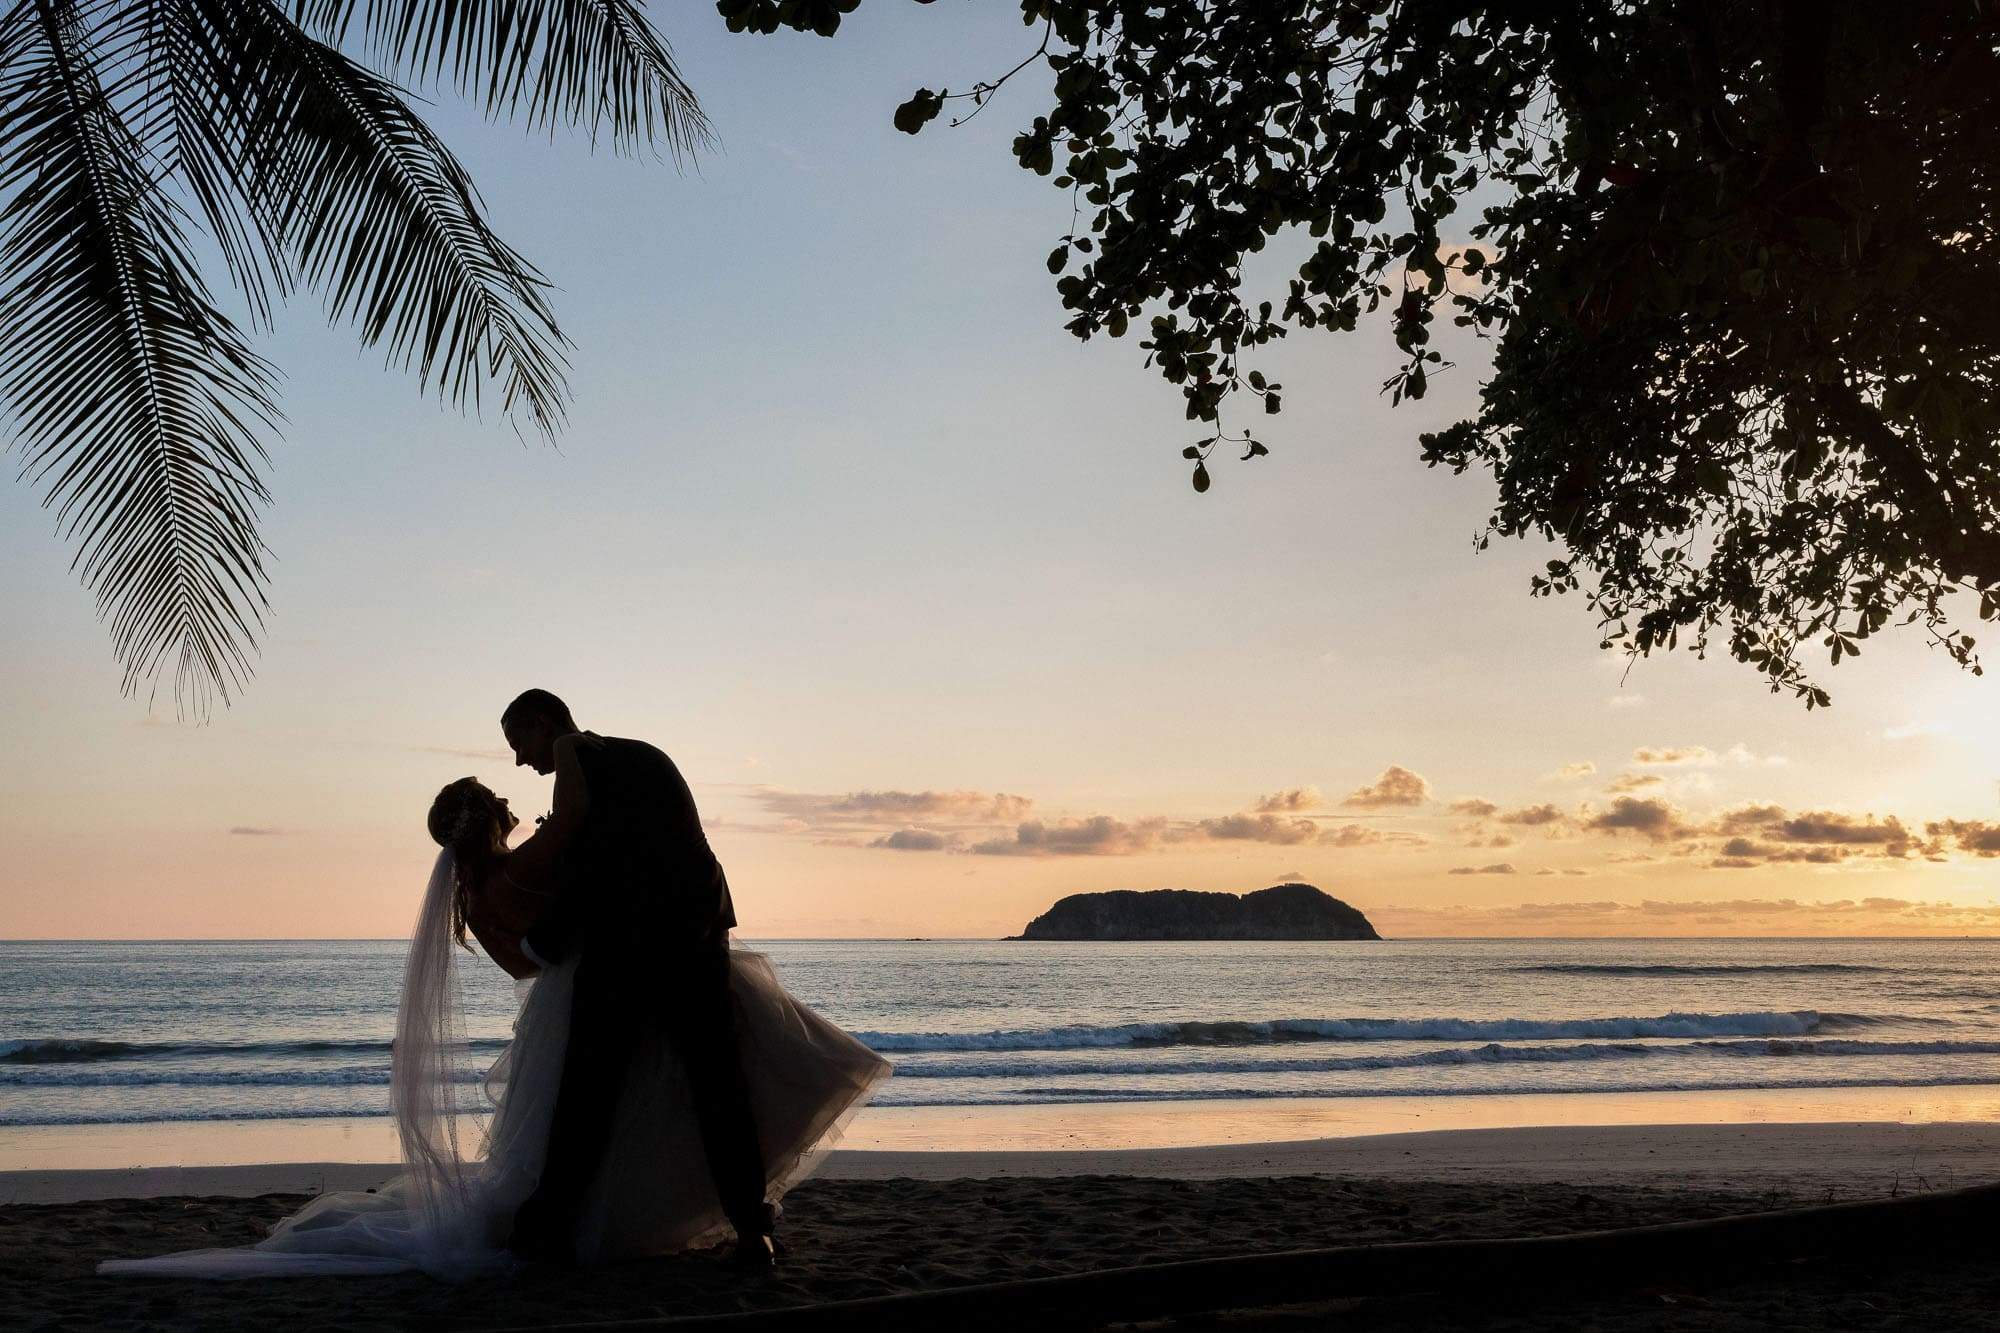 Stunning silhouette of the bride and the groom on the beach in front of an epic sunset.